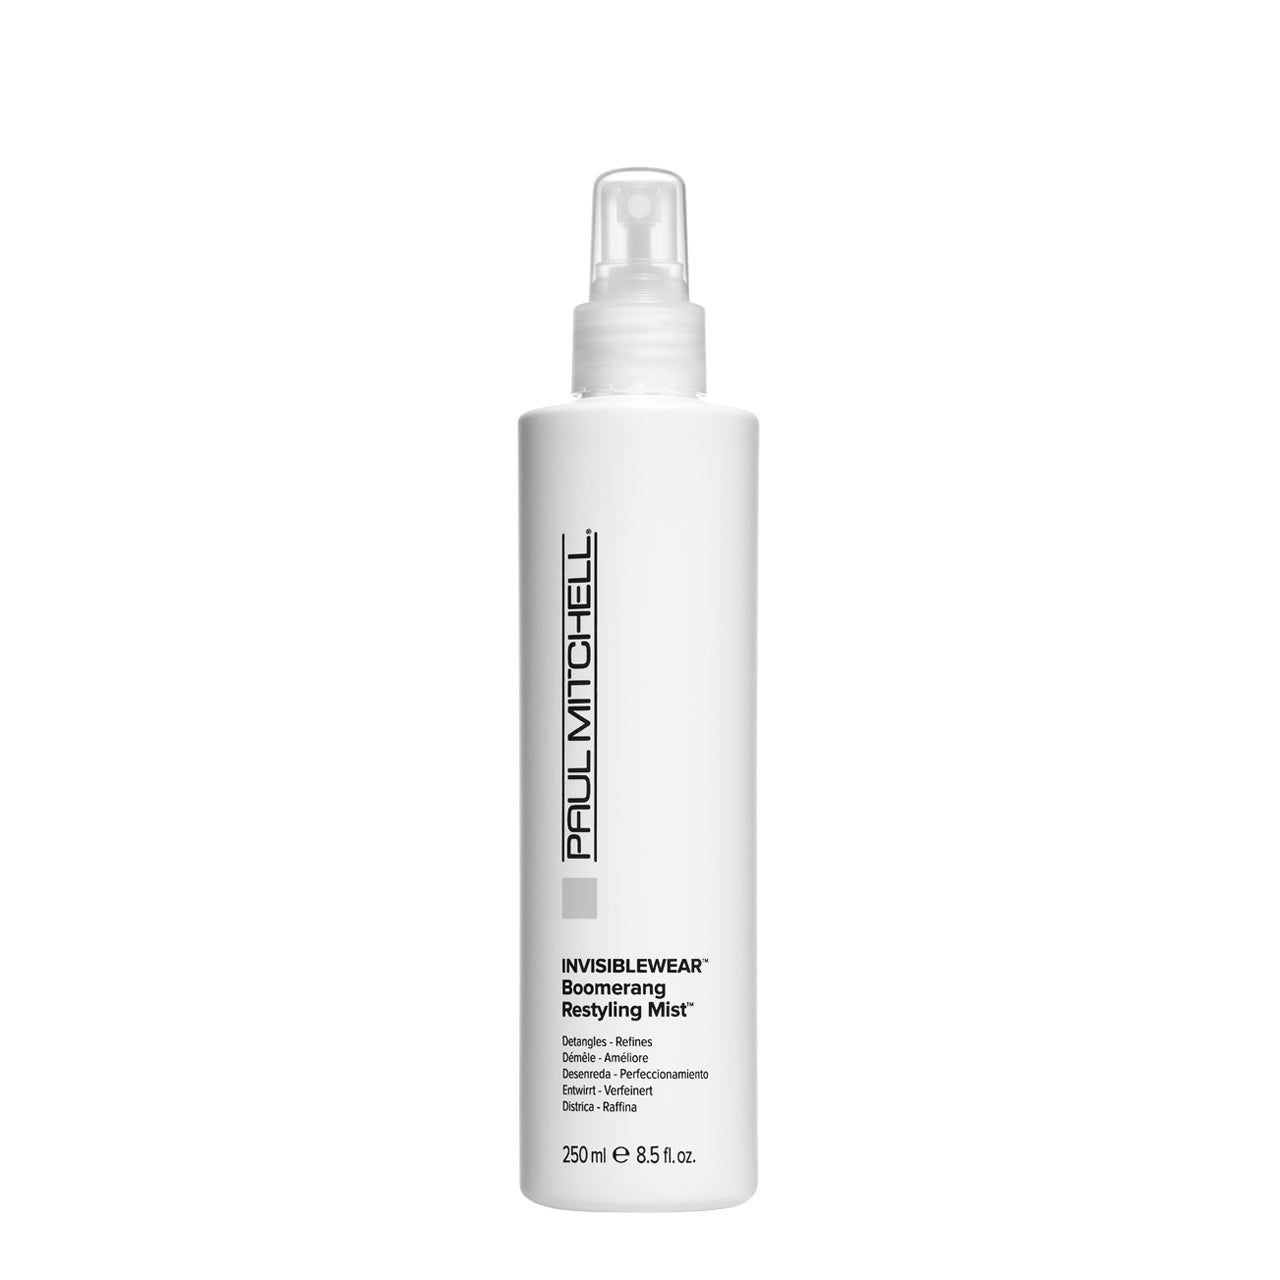 Paul Mitchell Invisiblewear Boomerang Restyling Mist 250ml